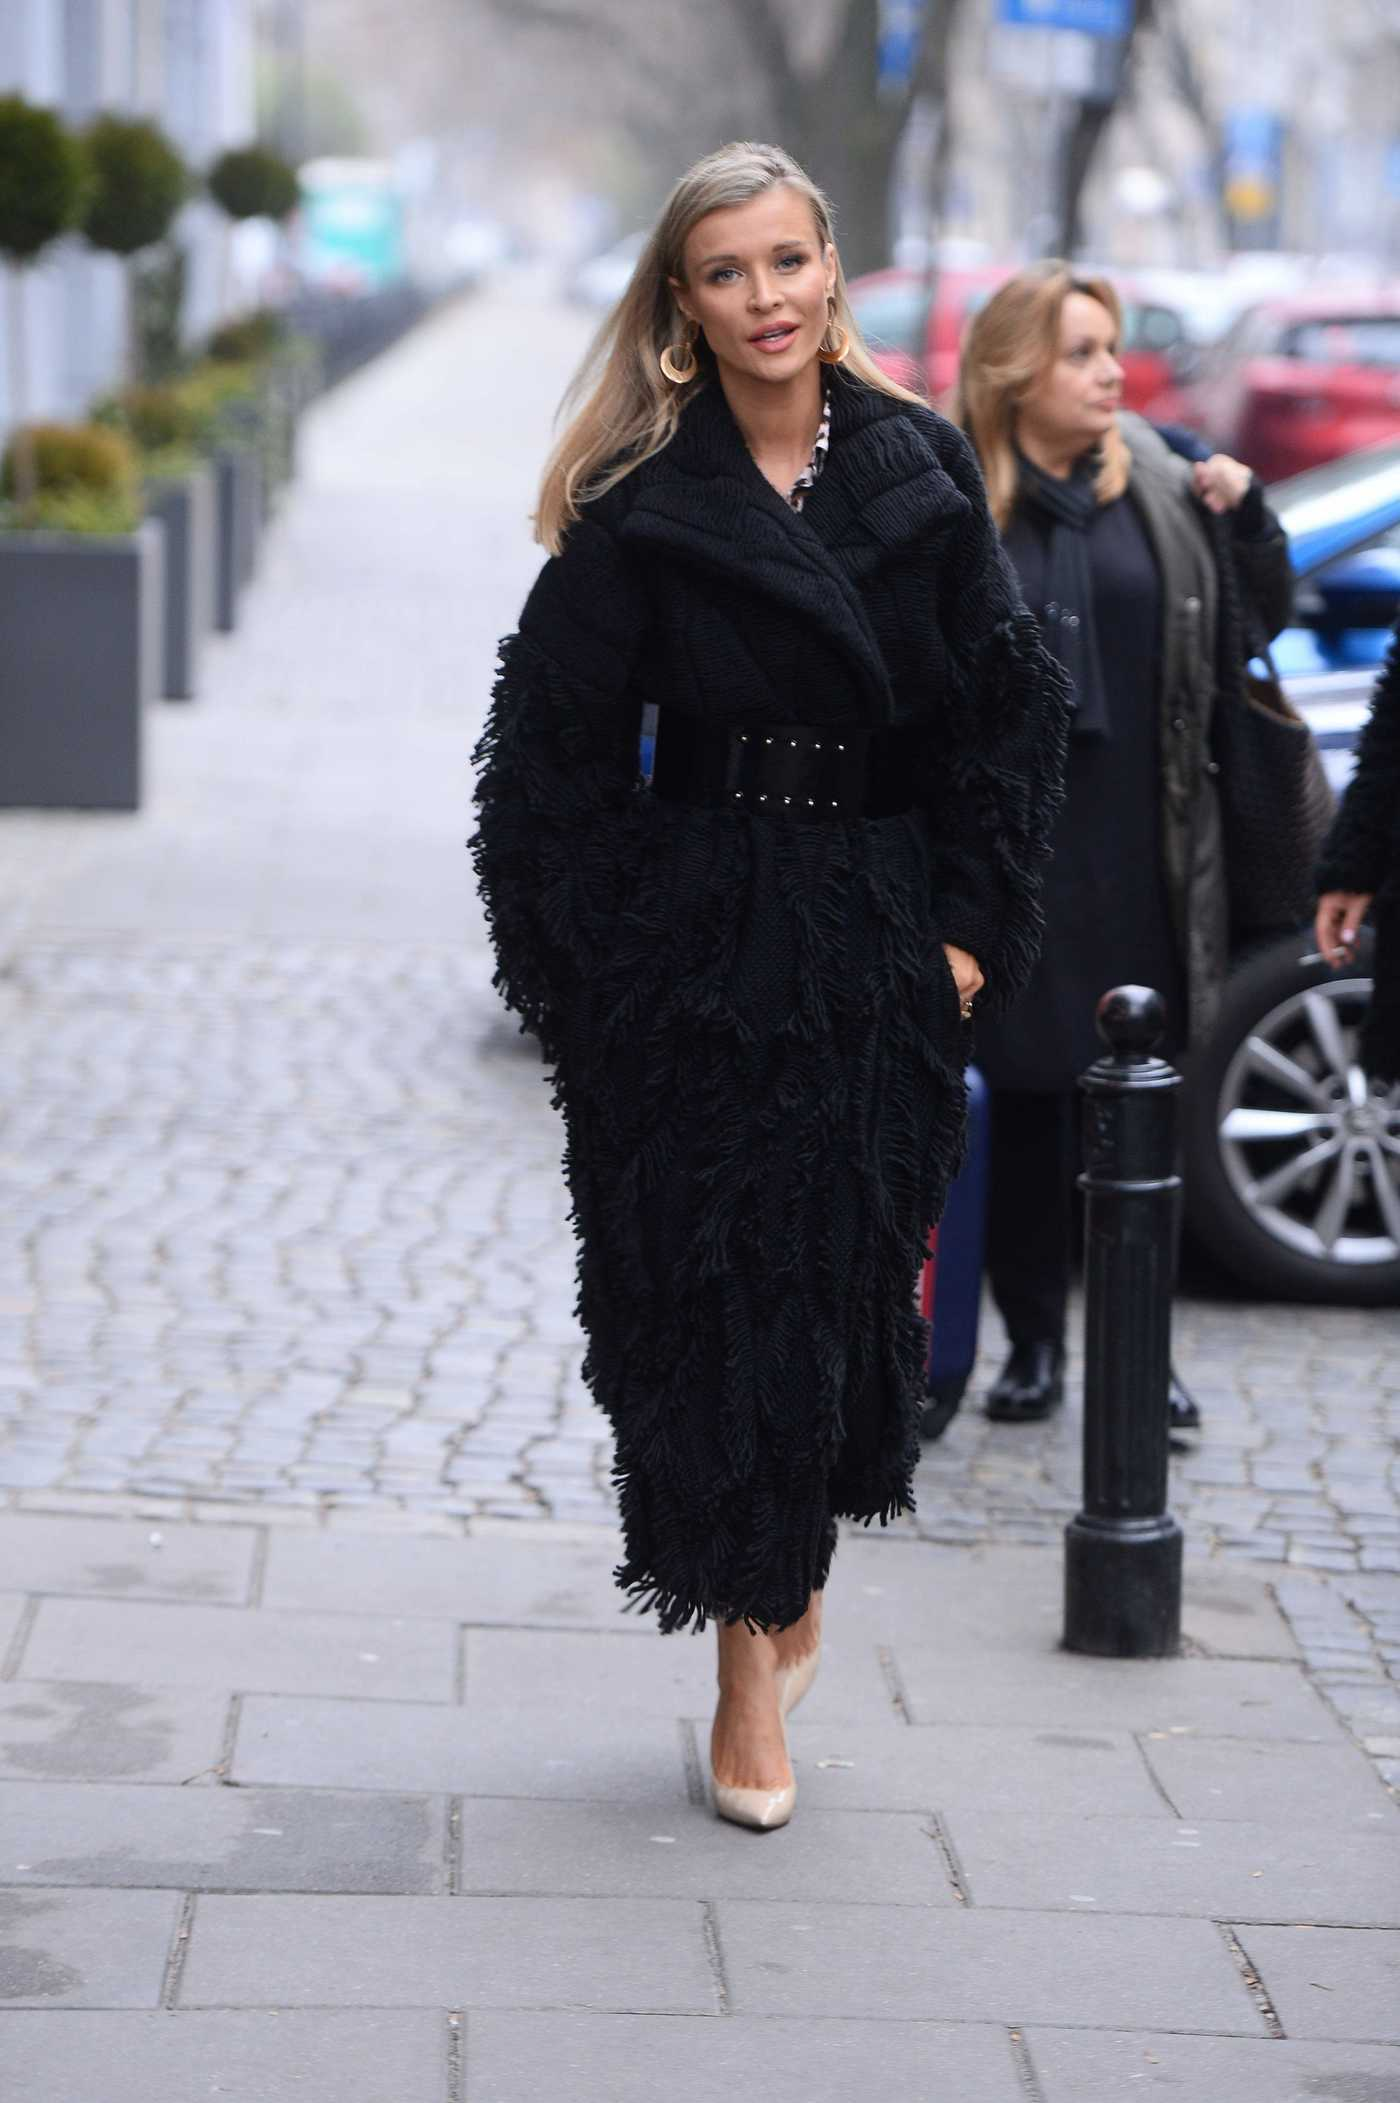 Joanna Krupa in a Black Coat Was Seen Out in Warsaw 11/25/2018